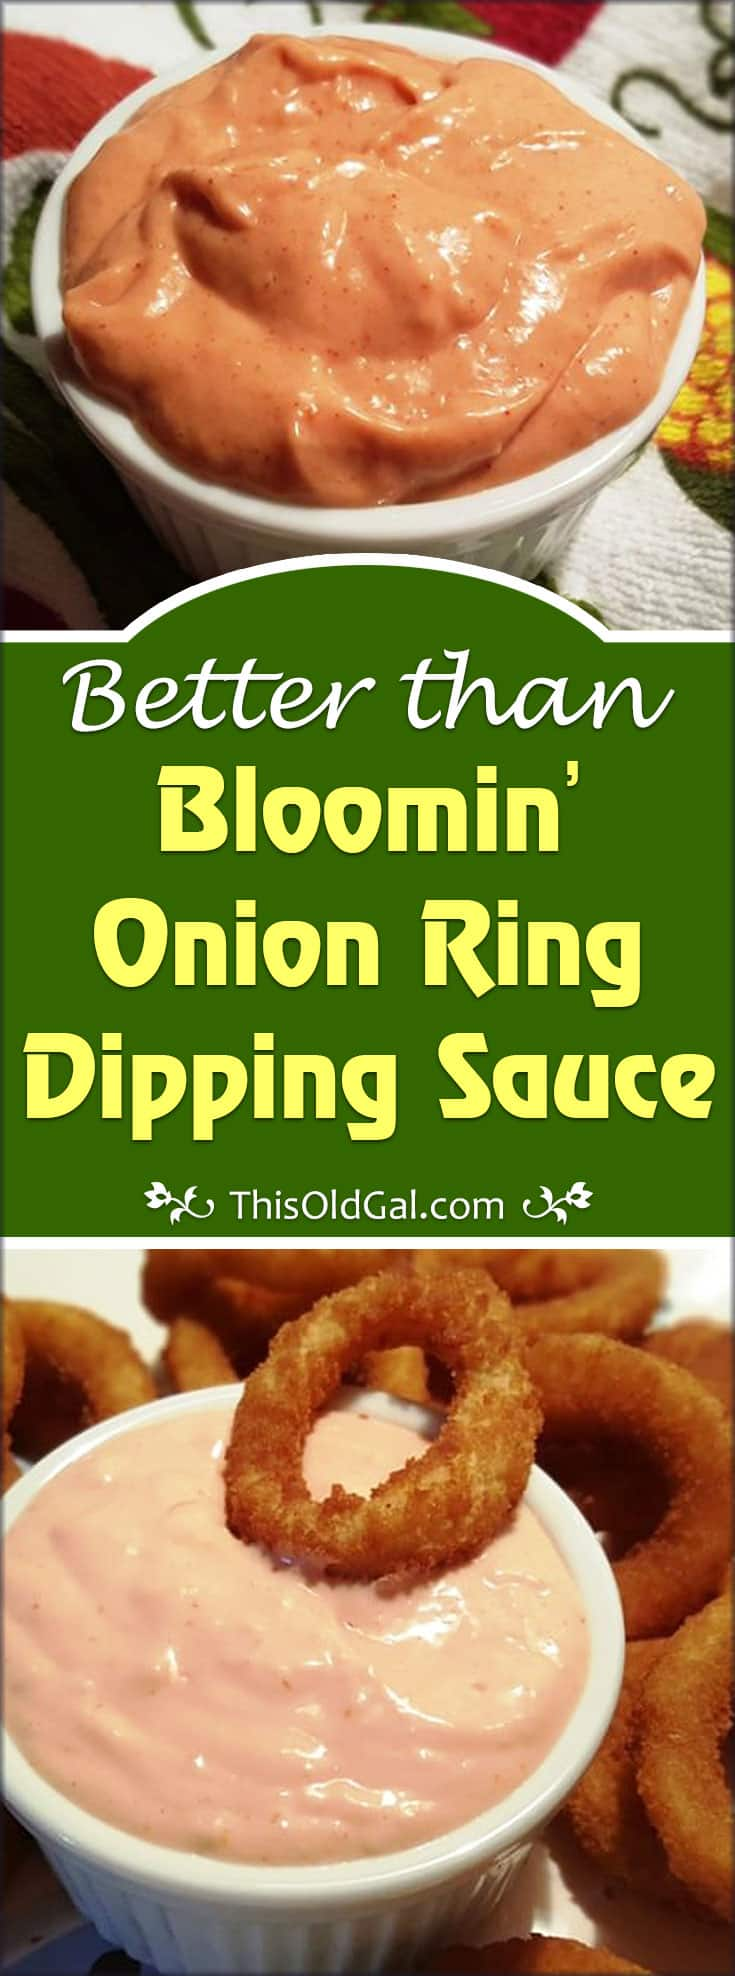 Better than Bloomin' Onion Ring Dipping Sauce Recipe